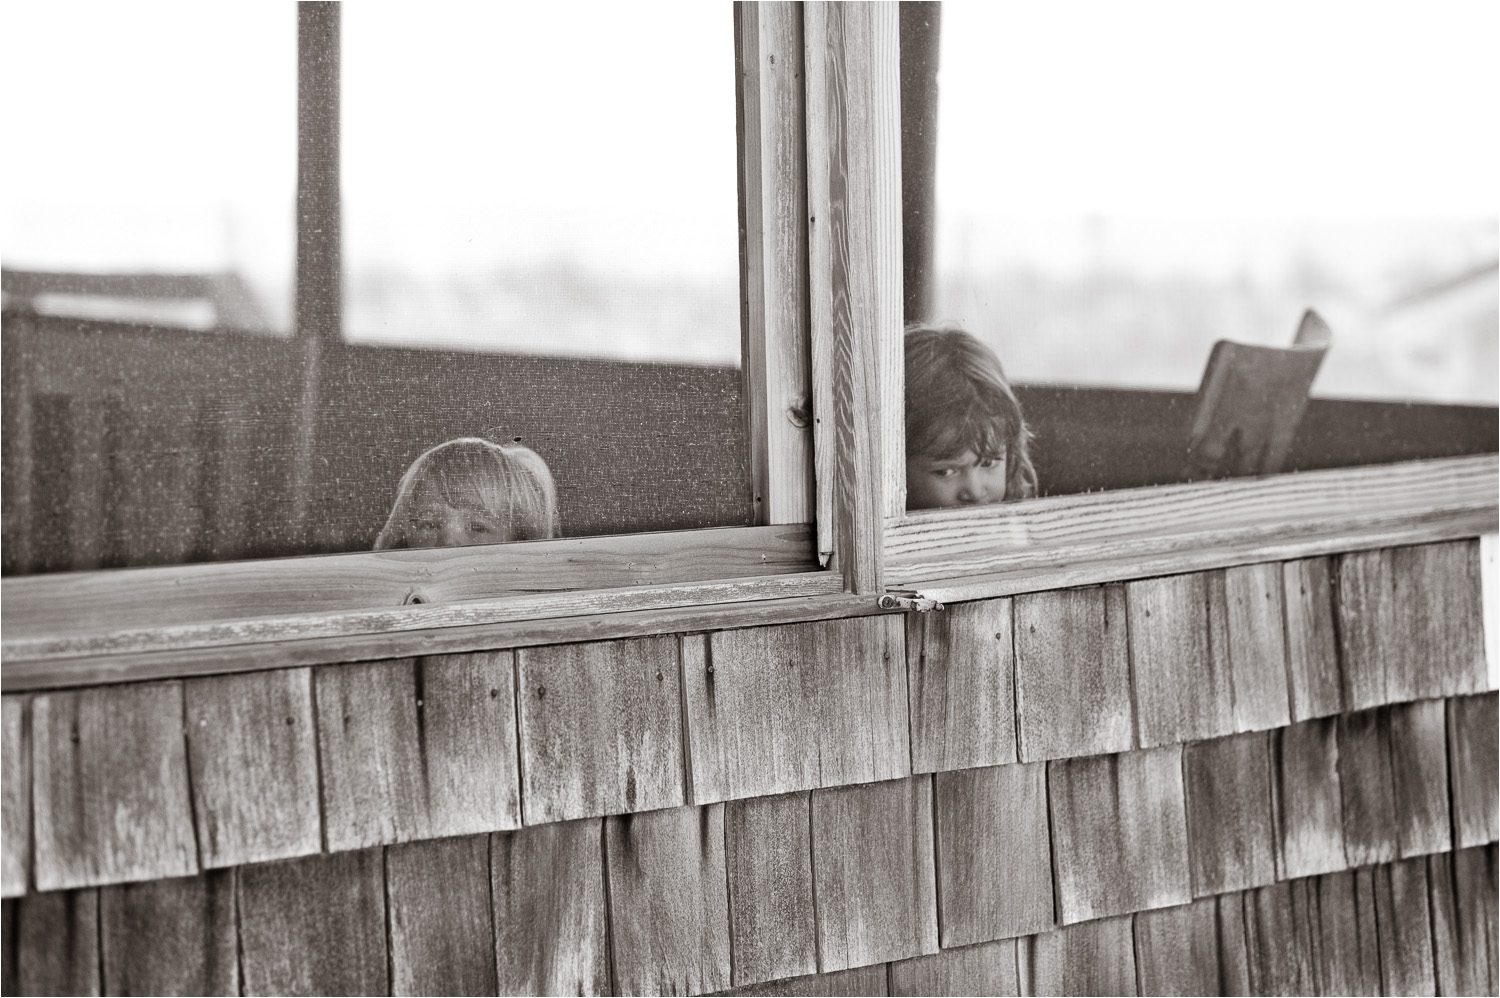 20100725_Fenwick-Island-Screened-Porch.jpg